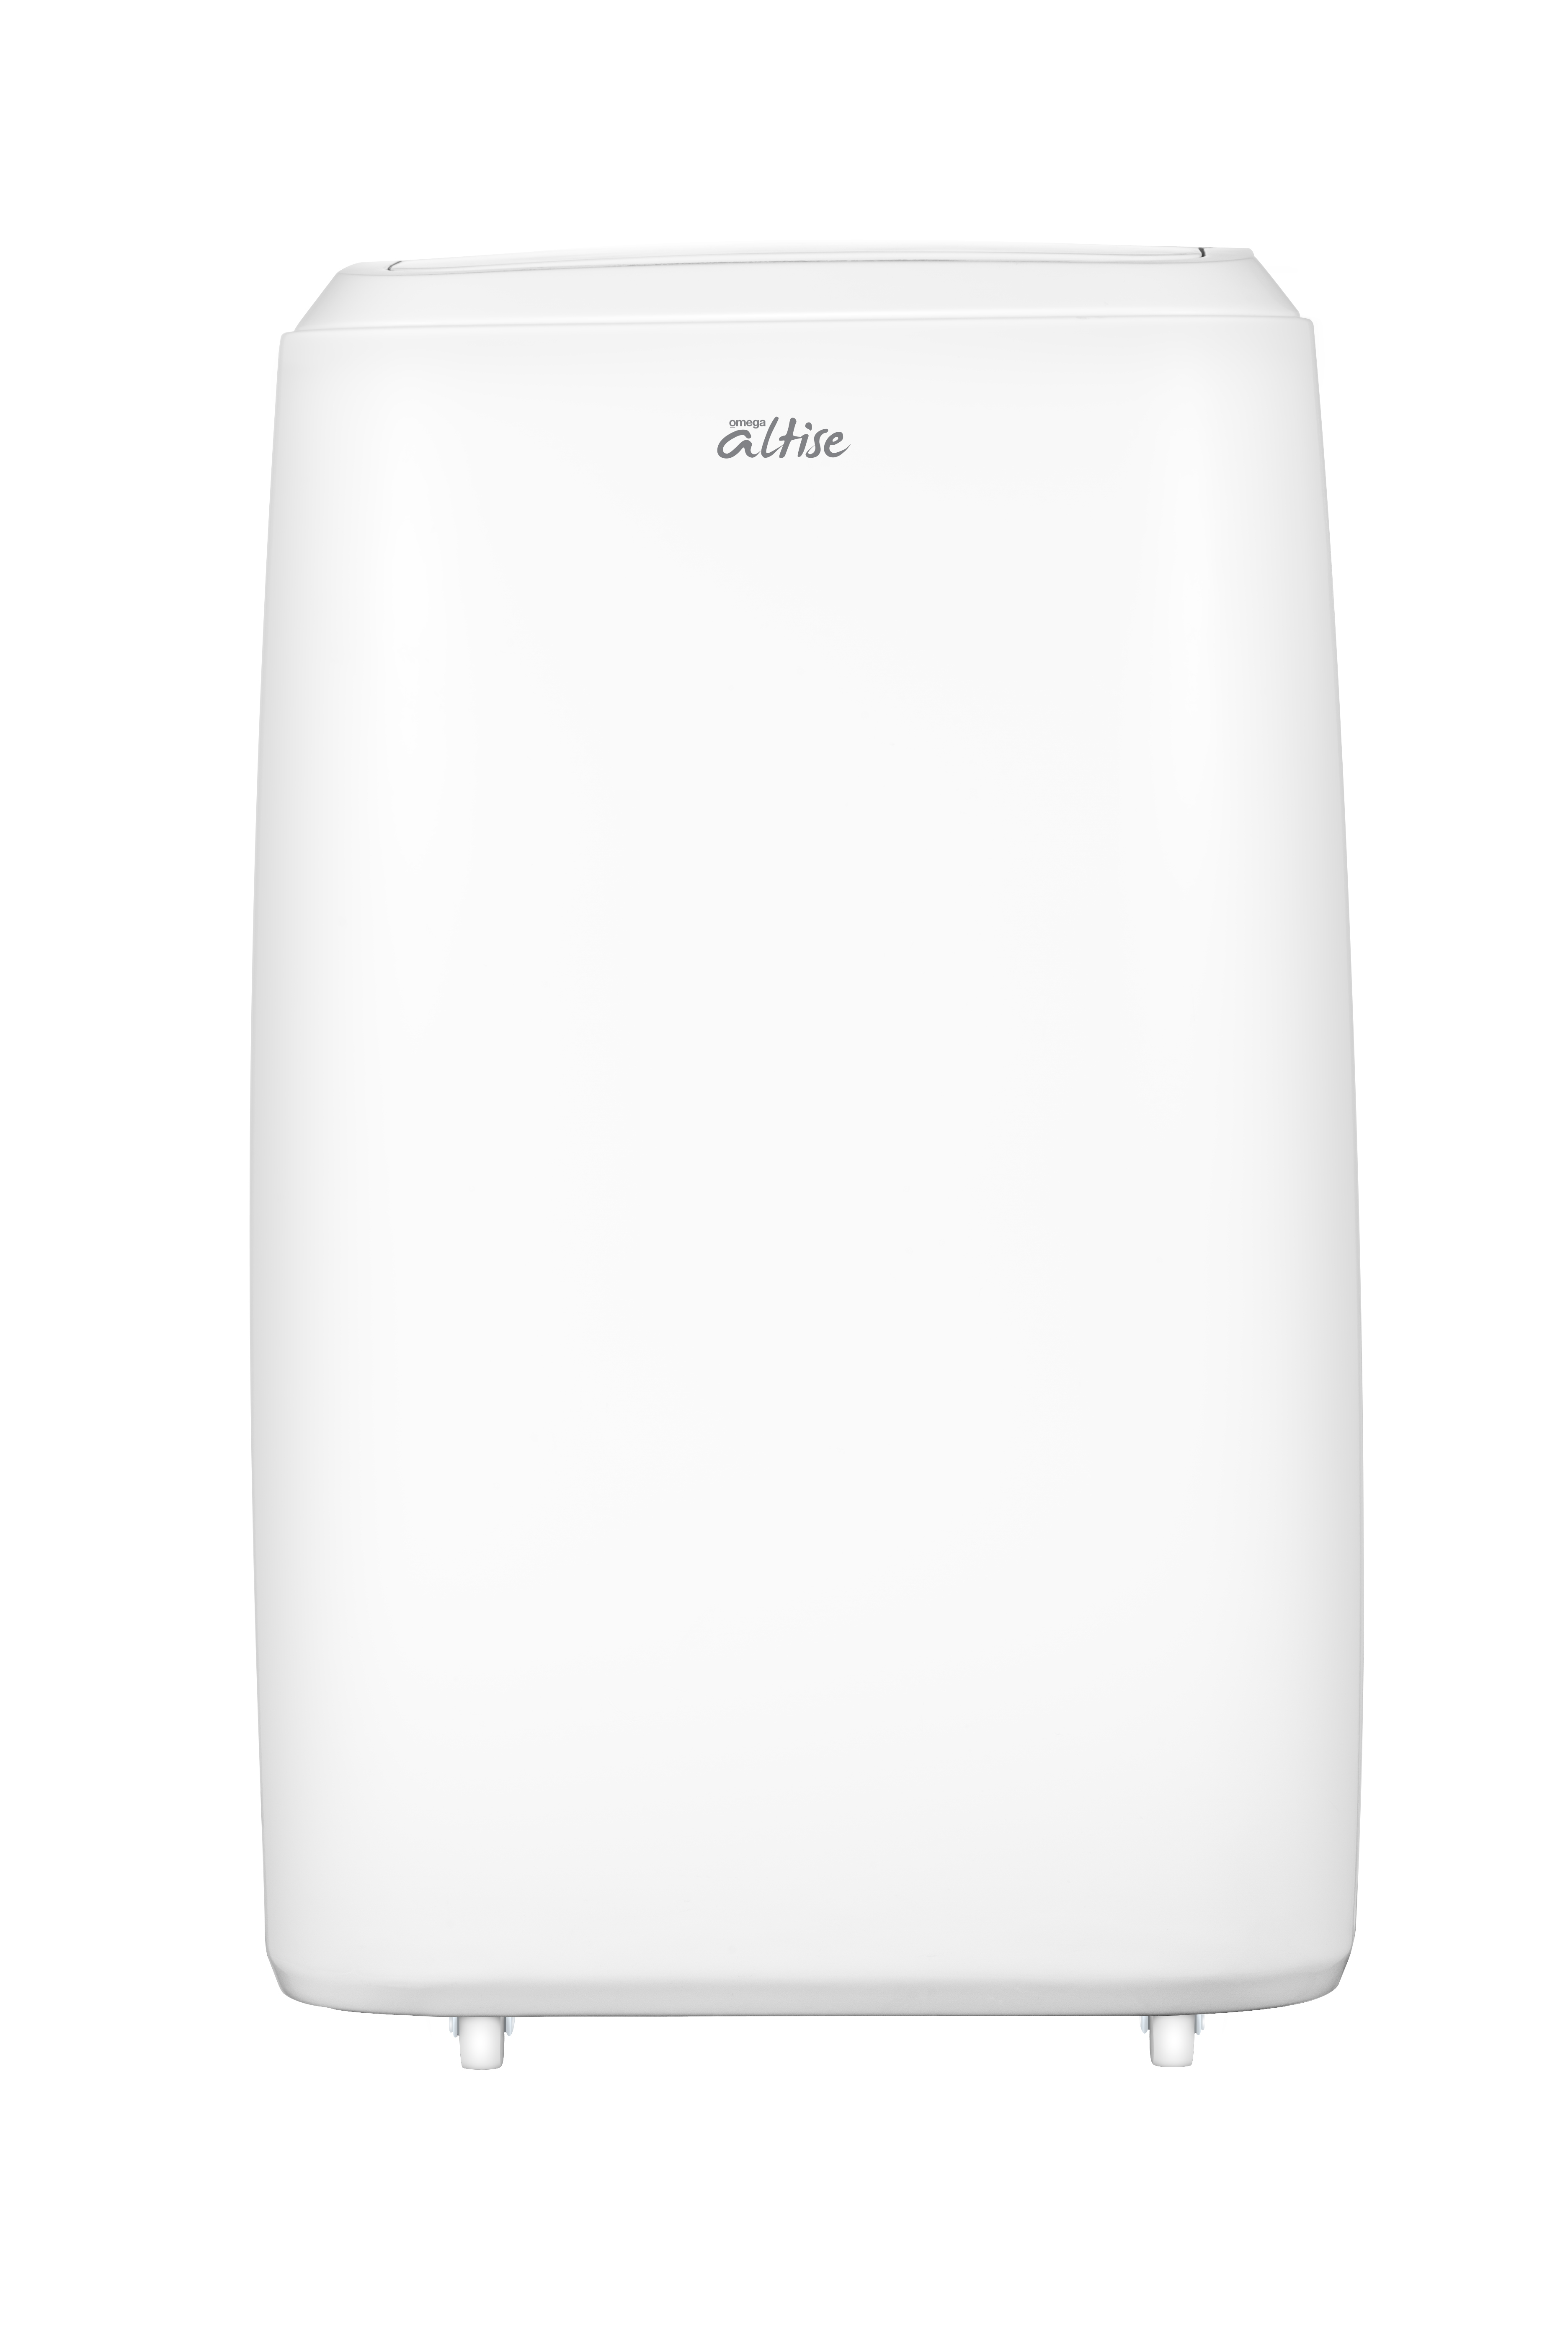 Omega Altise Product 3.5kW Slimline Portable Air-Conditioner(OAPC127)